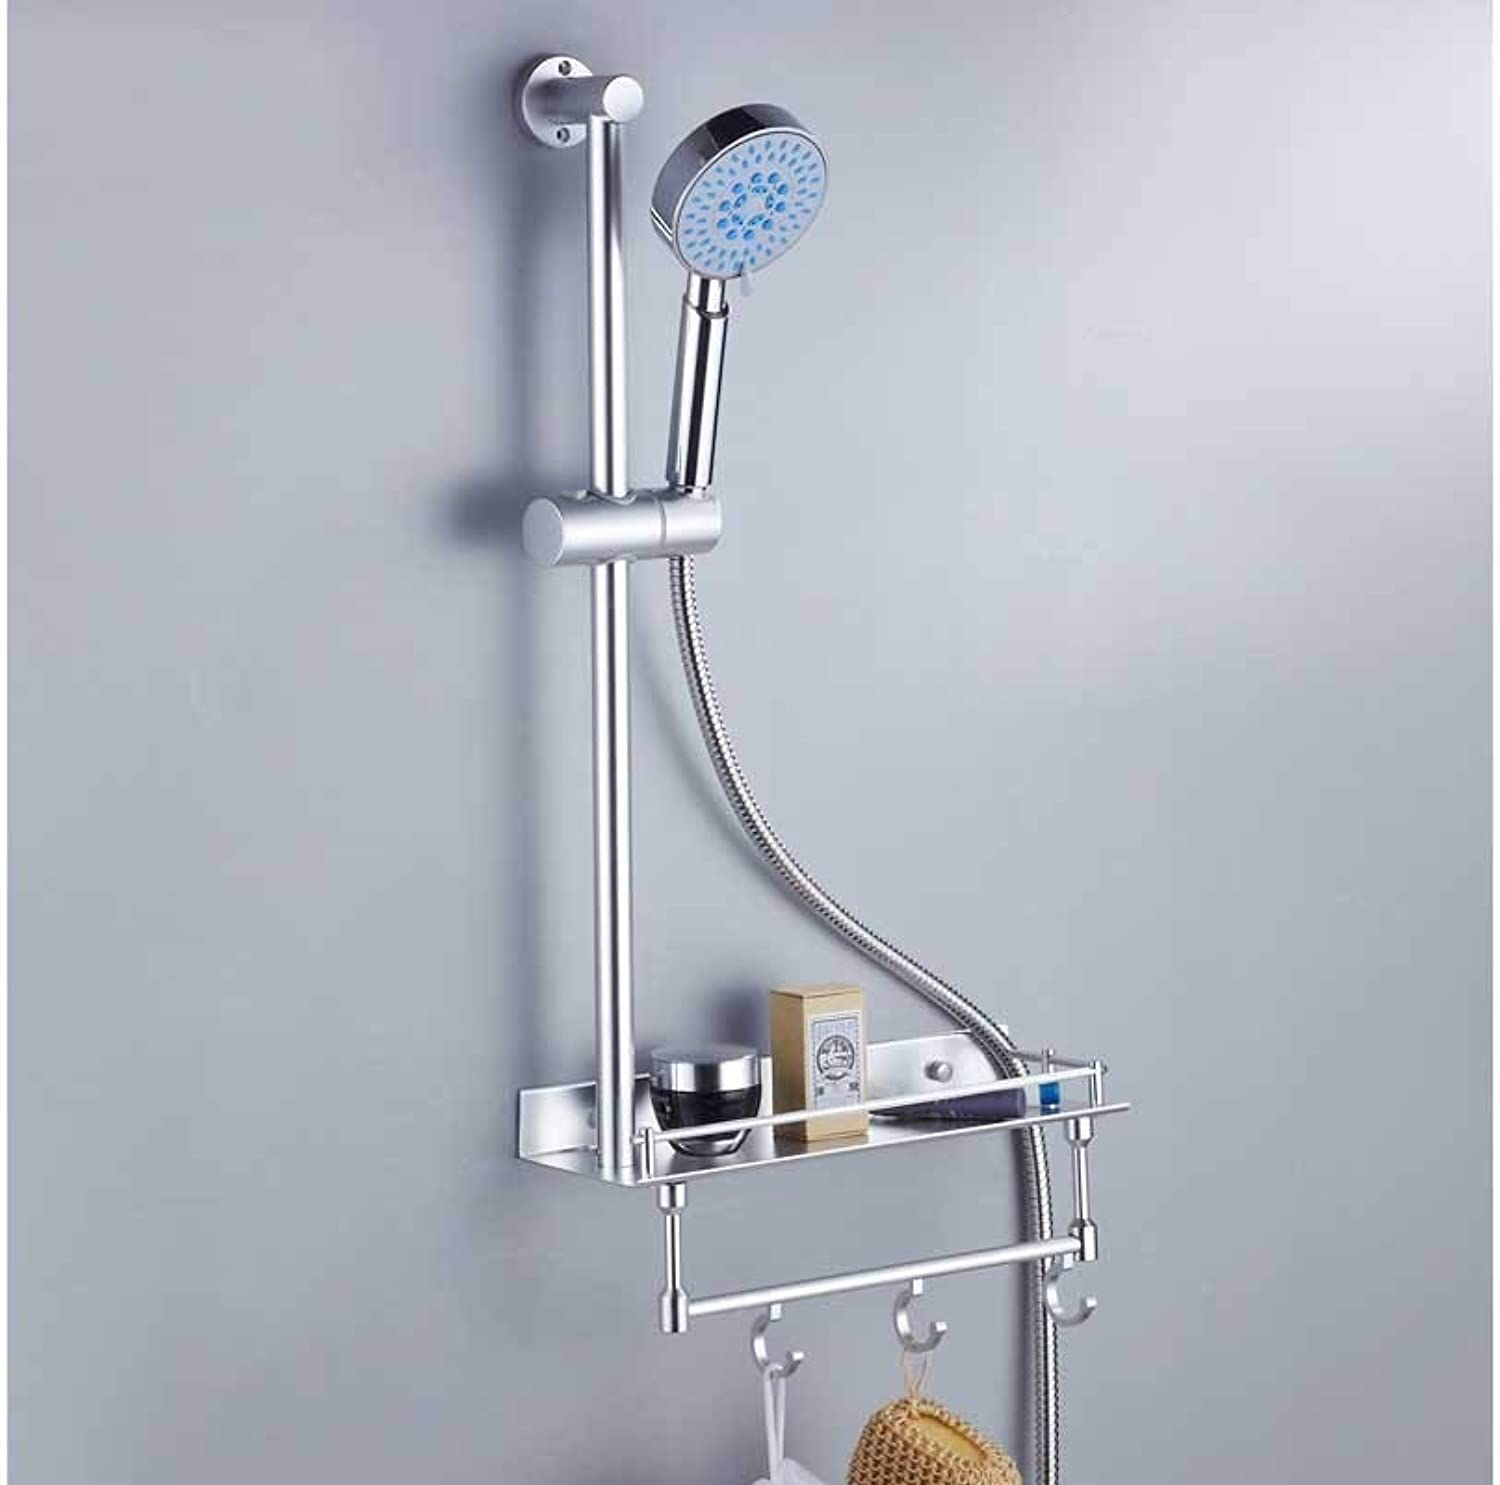 Bathroom Shower Space Aluminum Lifting Rod Adjustable Shower